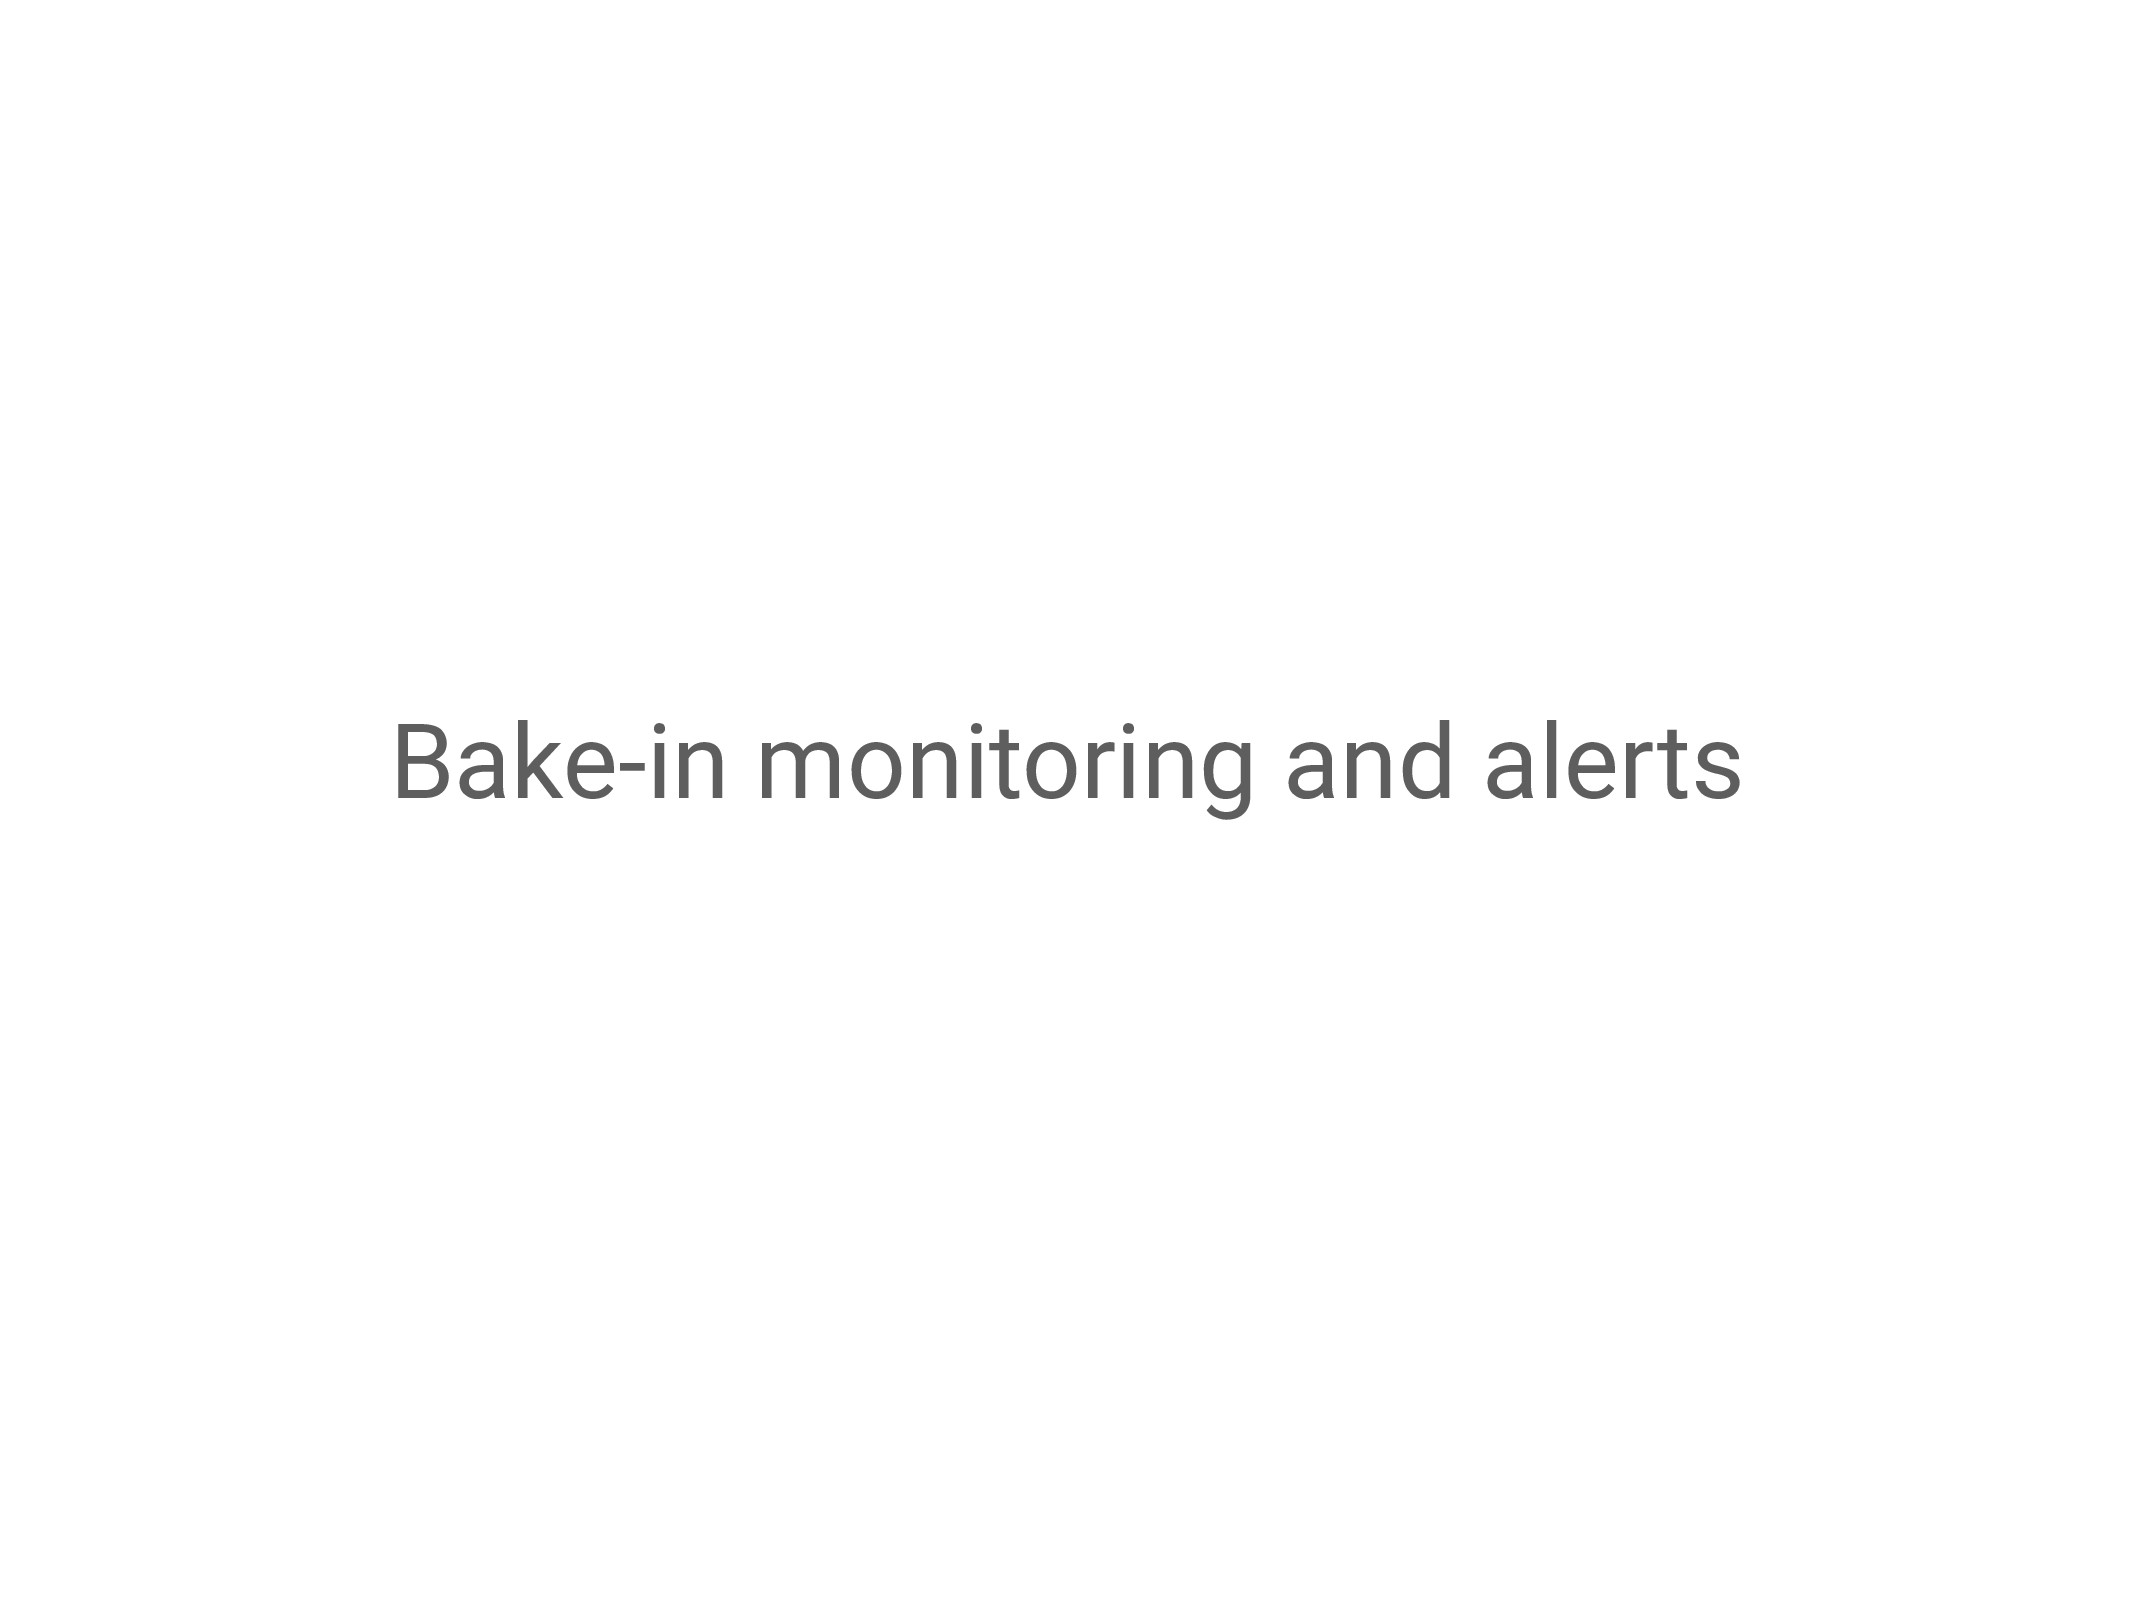 Bake-in monitoring and alerts